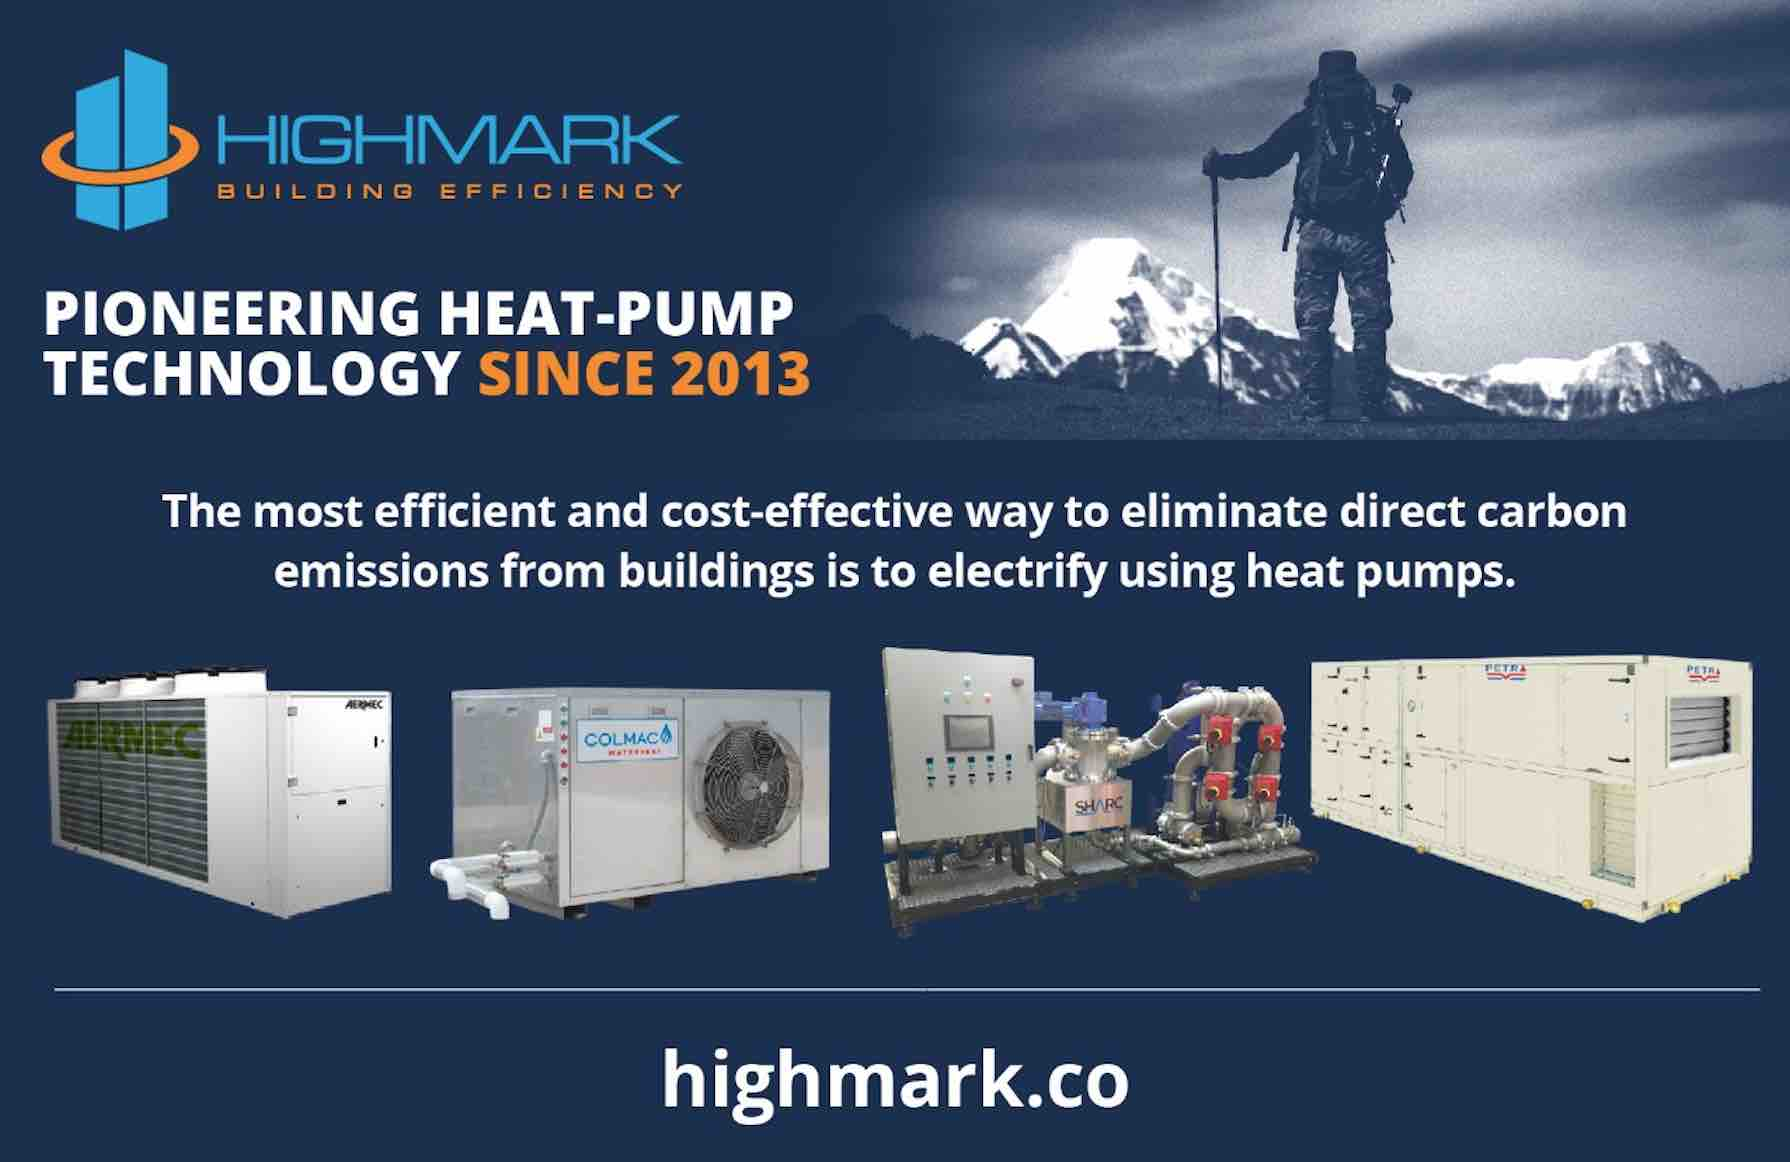 HIGHMARK - Pioneering Heat-Pump Technology Since 2013